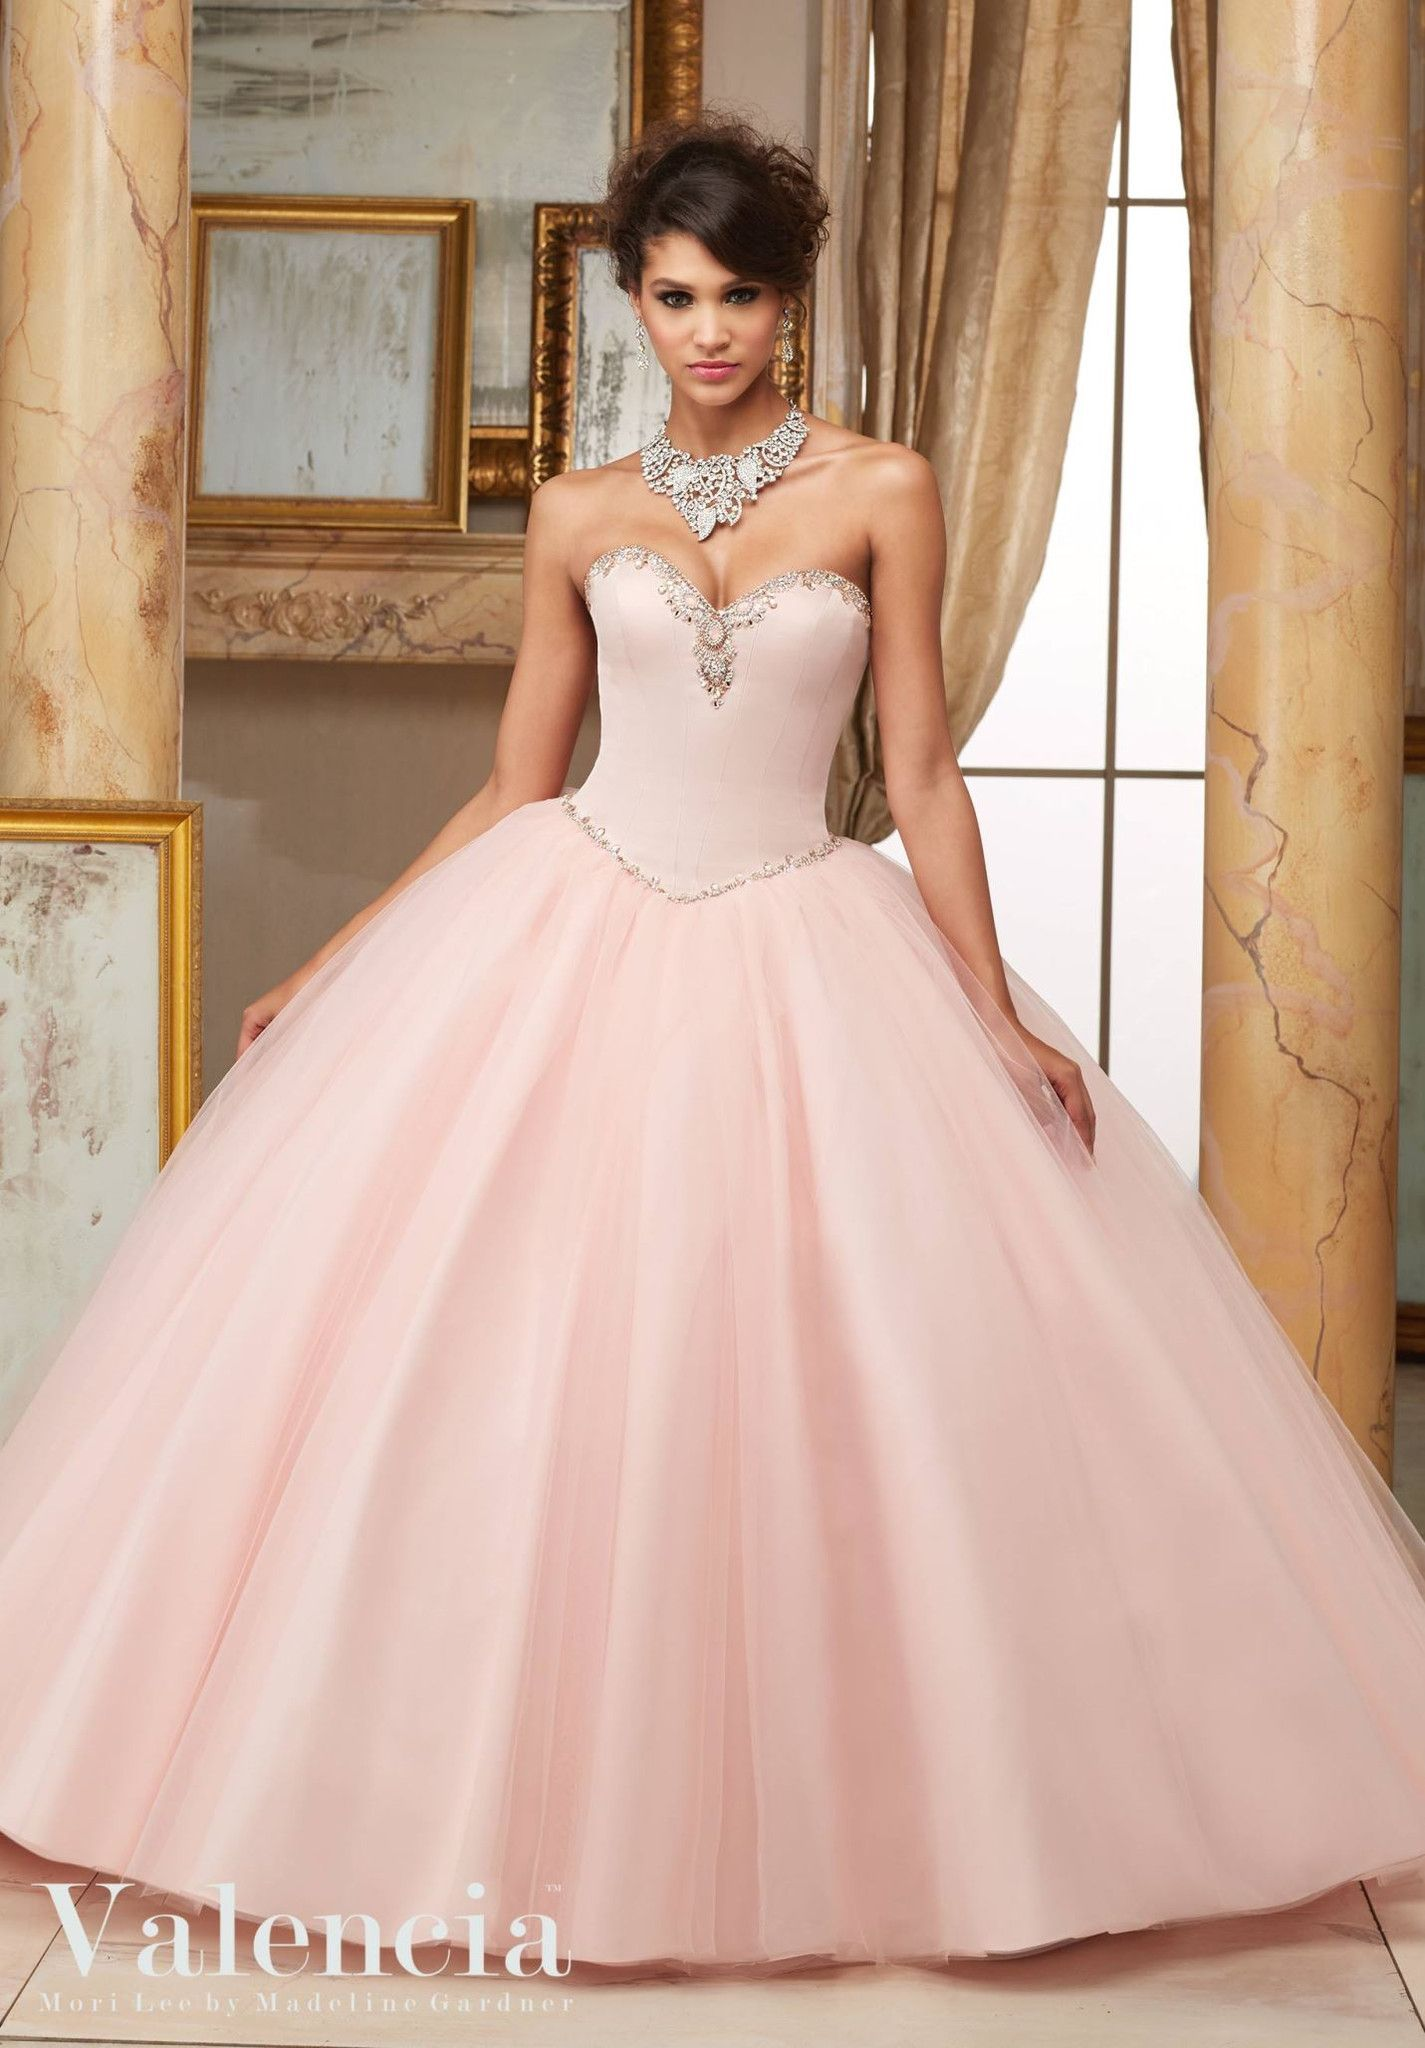 Mori Lee Valencia Quinceanera Dress 60005